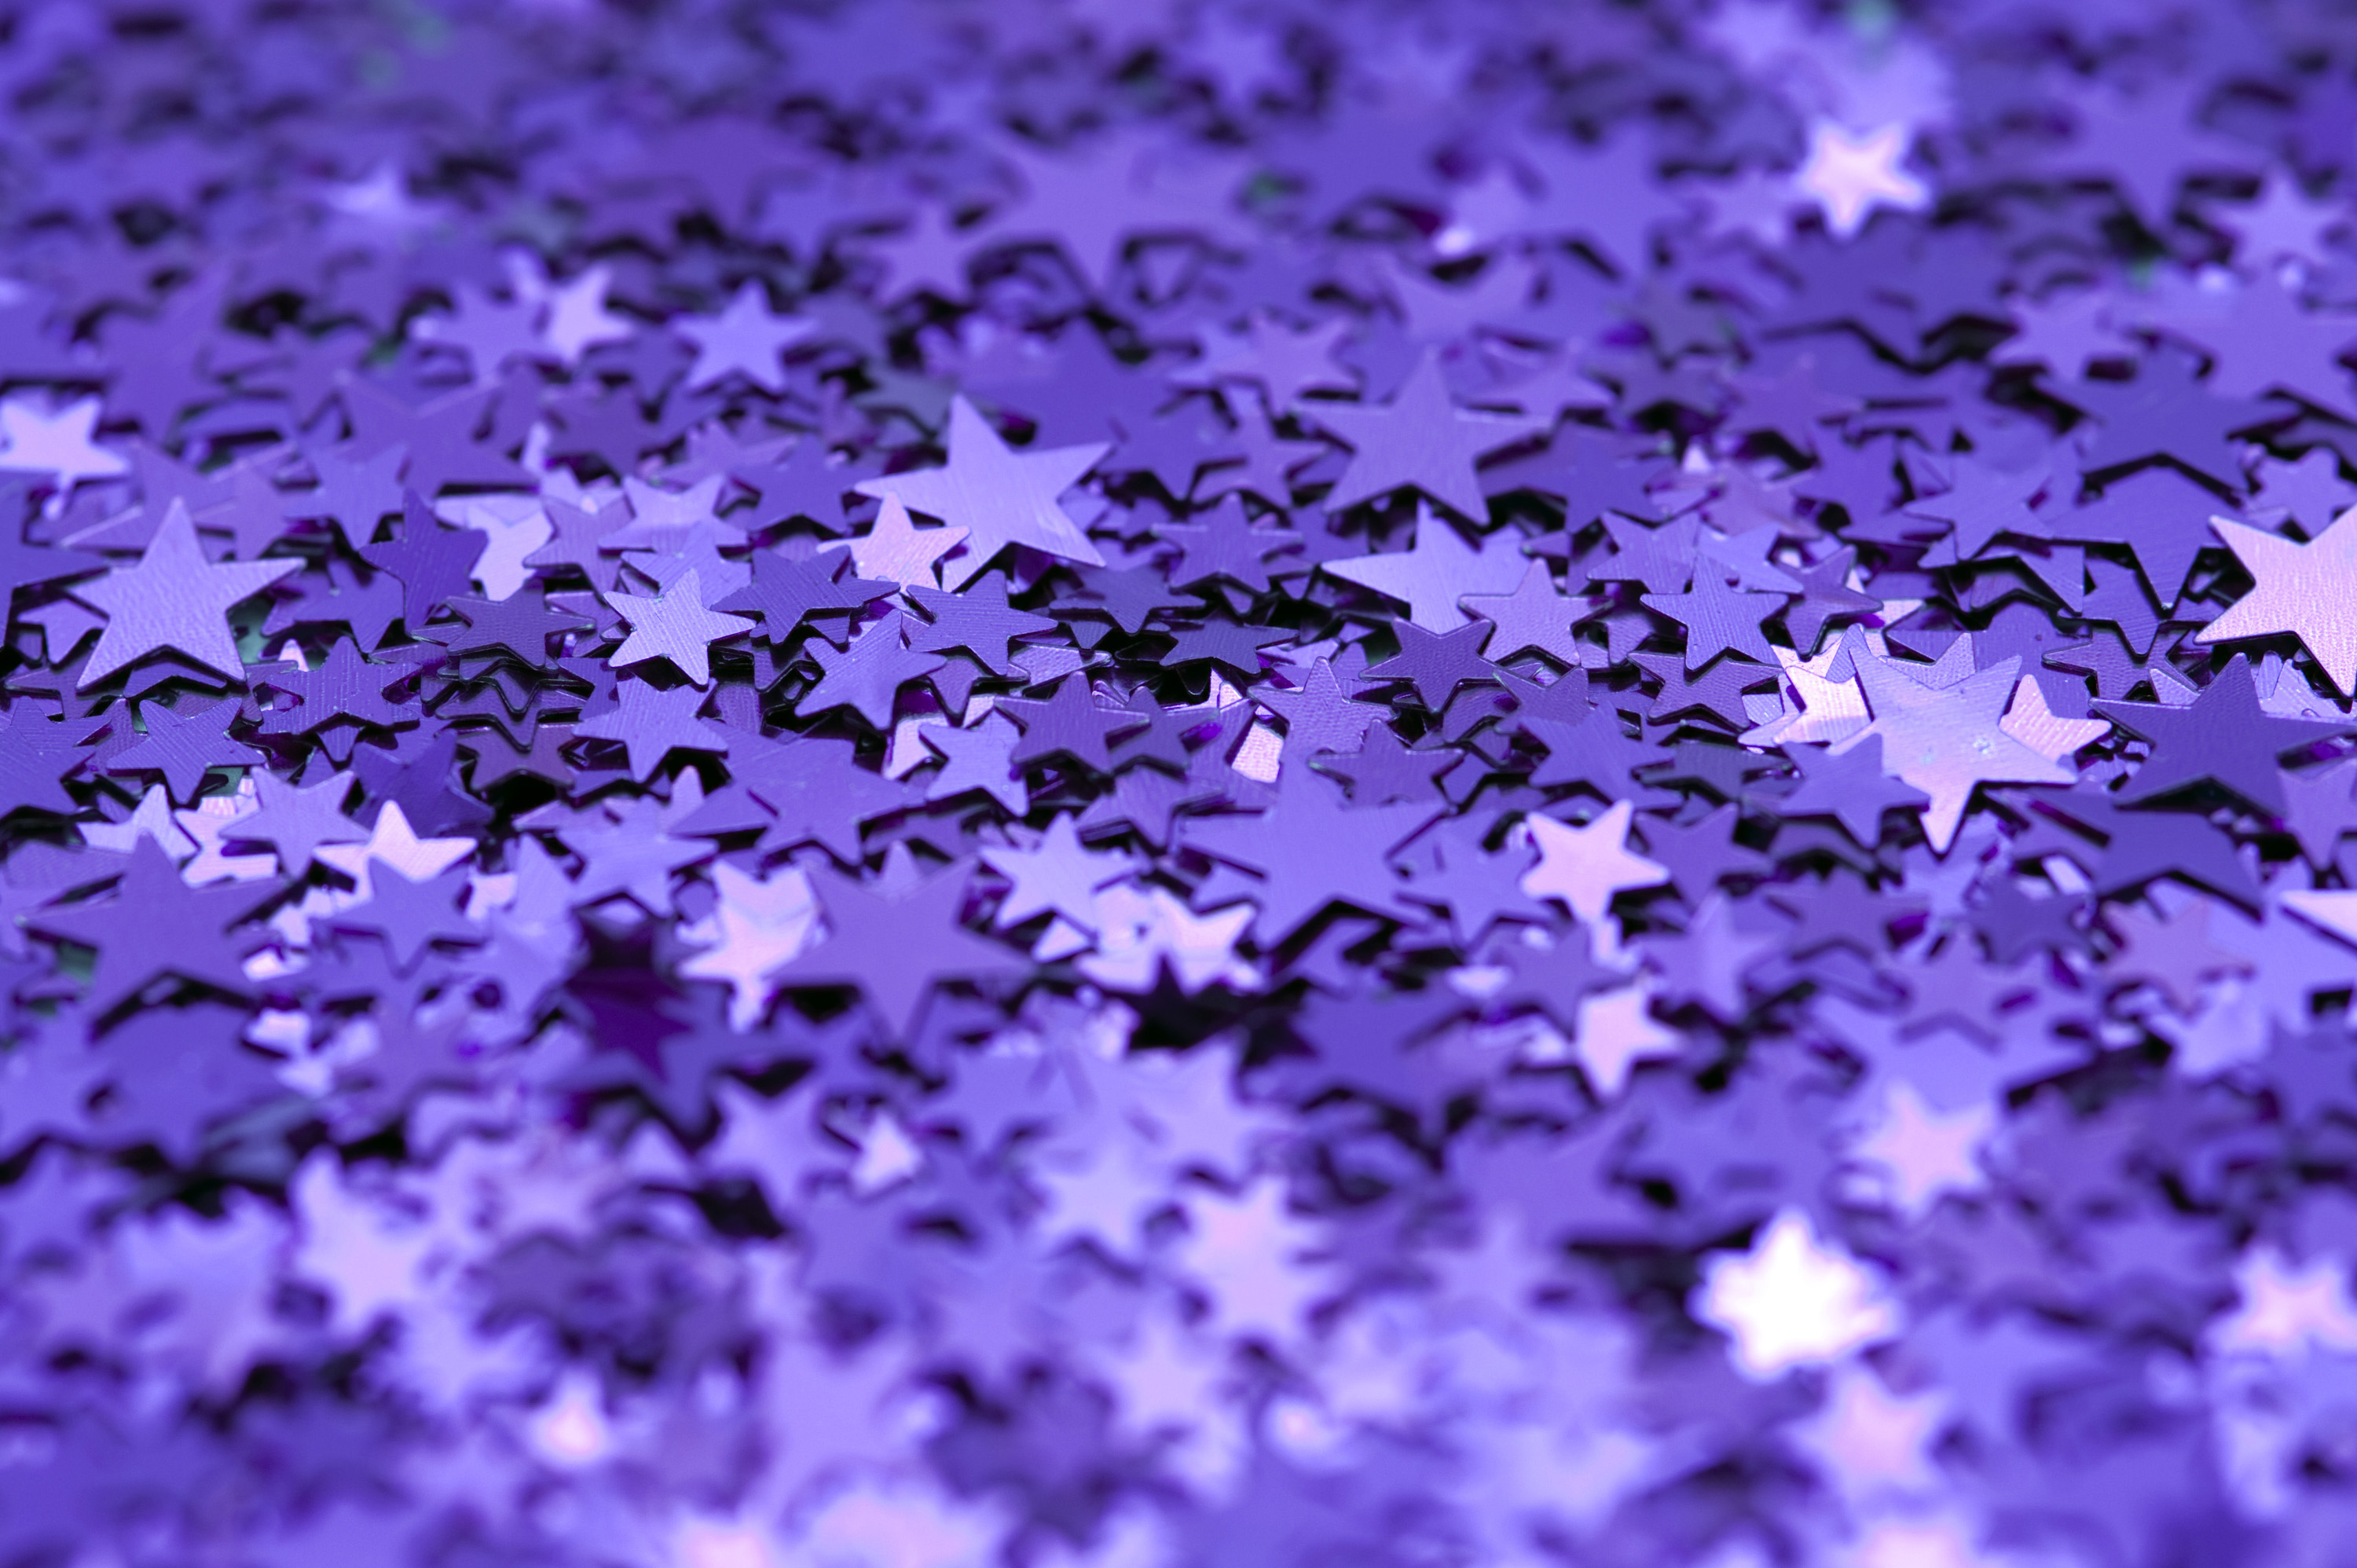 a colorful background of sparkling purple stars